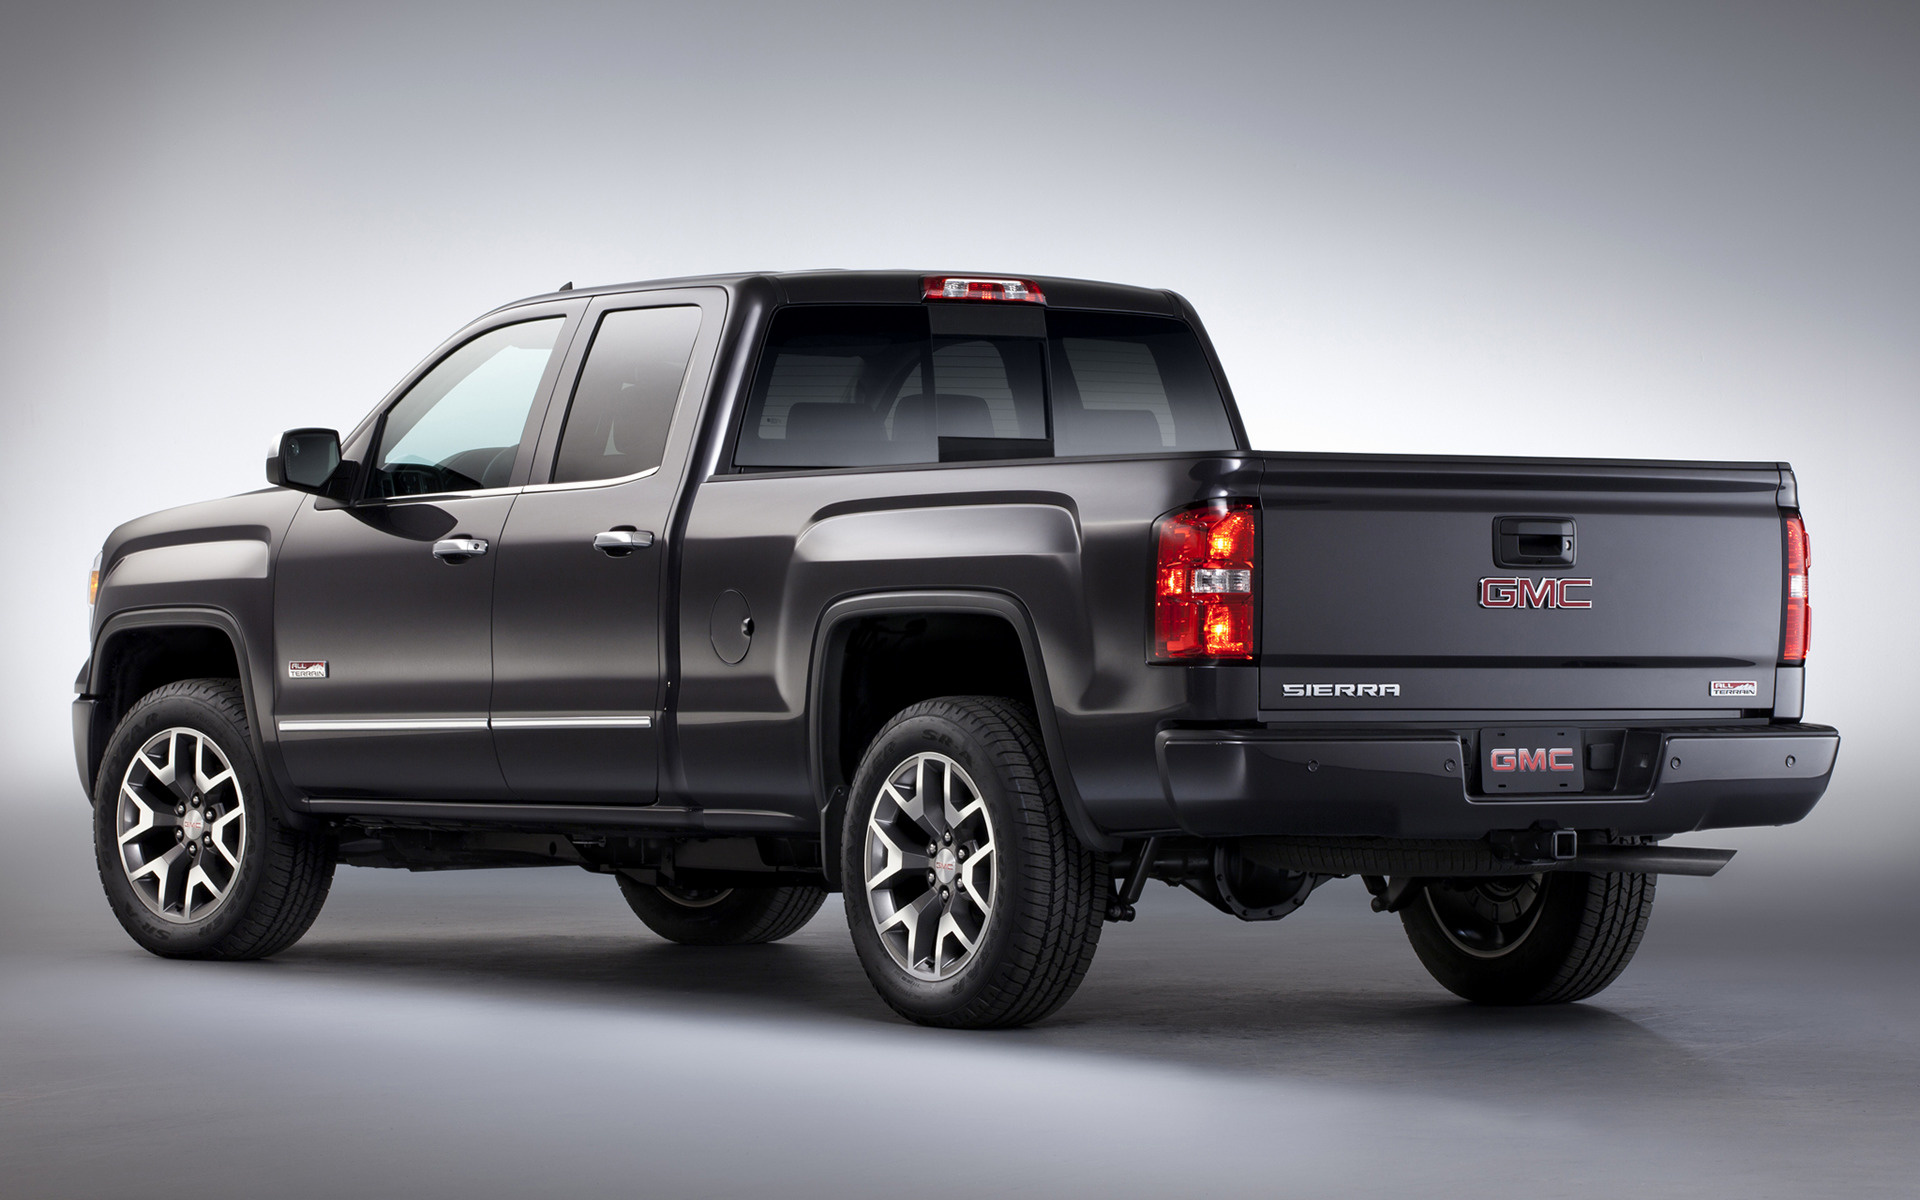 2015 Ram 2500 >> 2014 GMC Sierra All Terrain 1500 Double Cab - Wallpapers ...